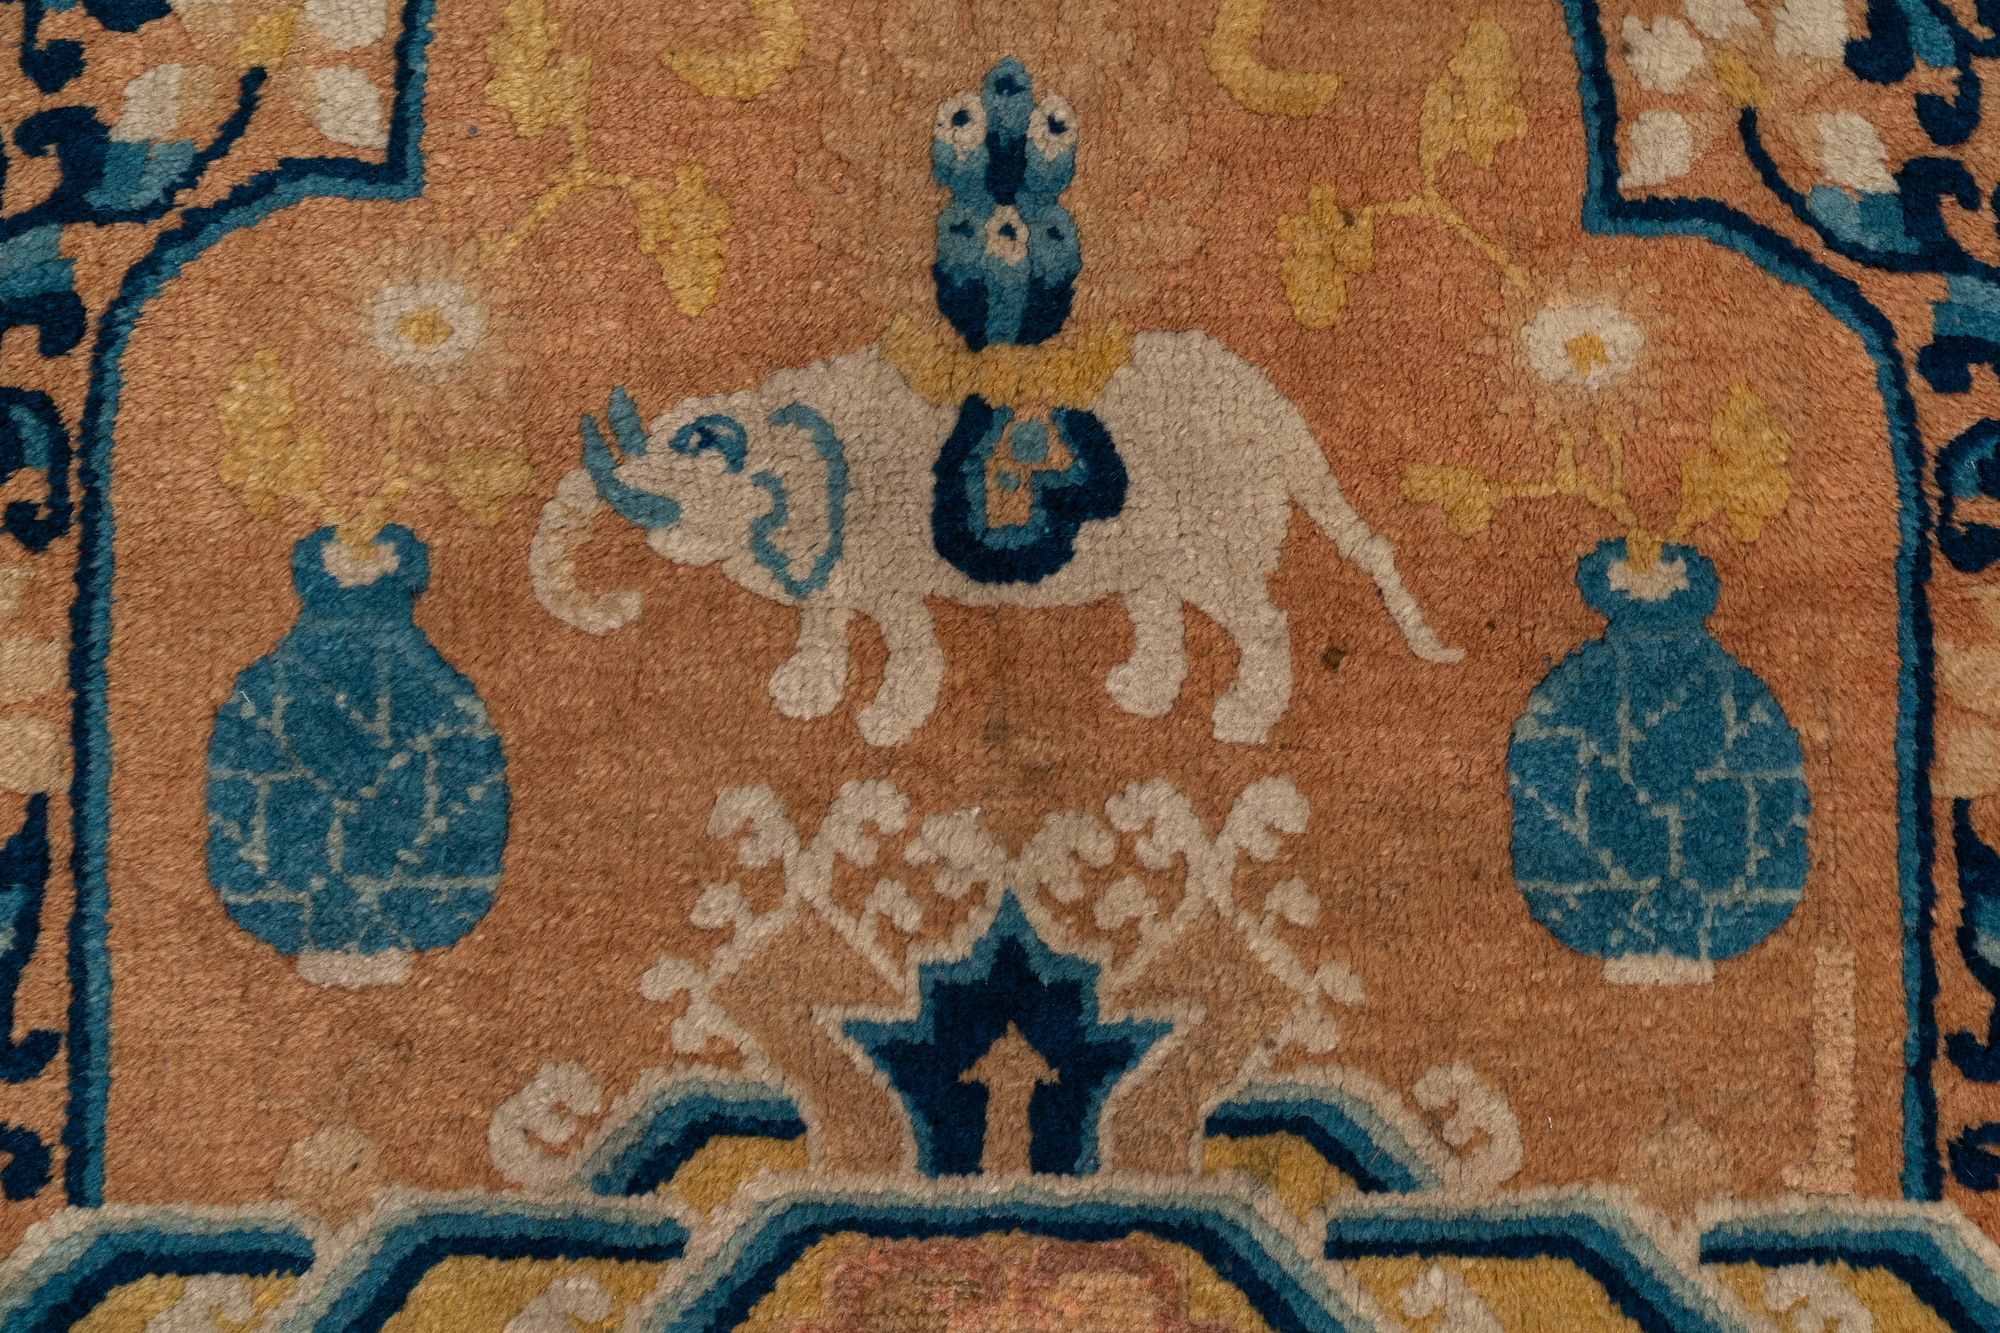 A Chinese Ningxia throne back cover carpet with an elephant, 19th C. - Image 3 of 3